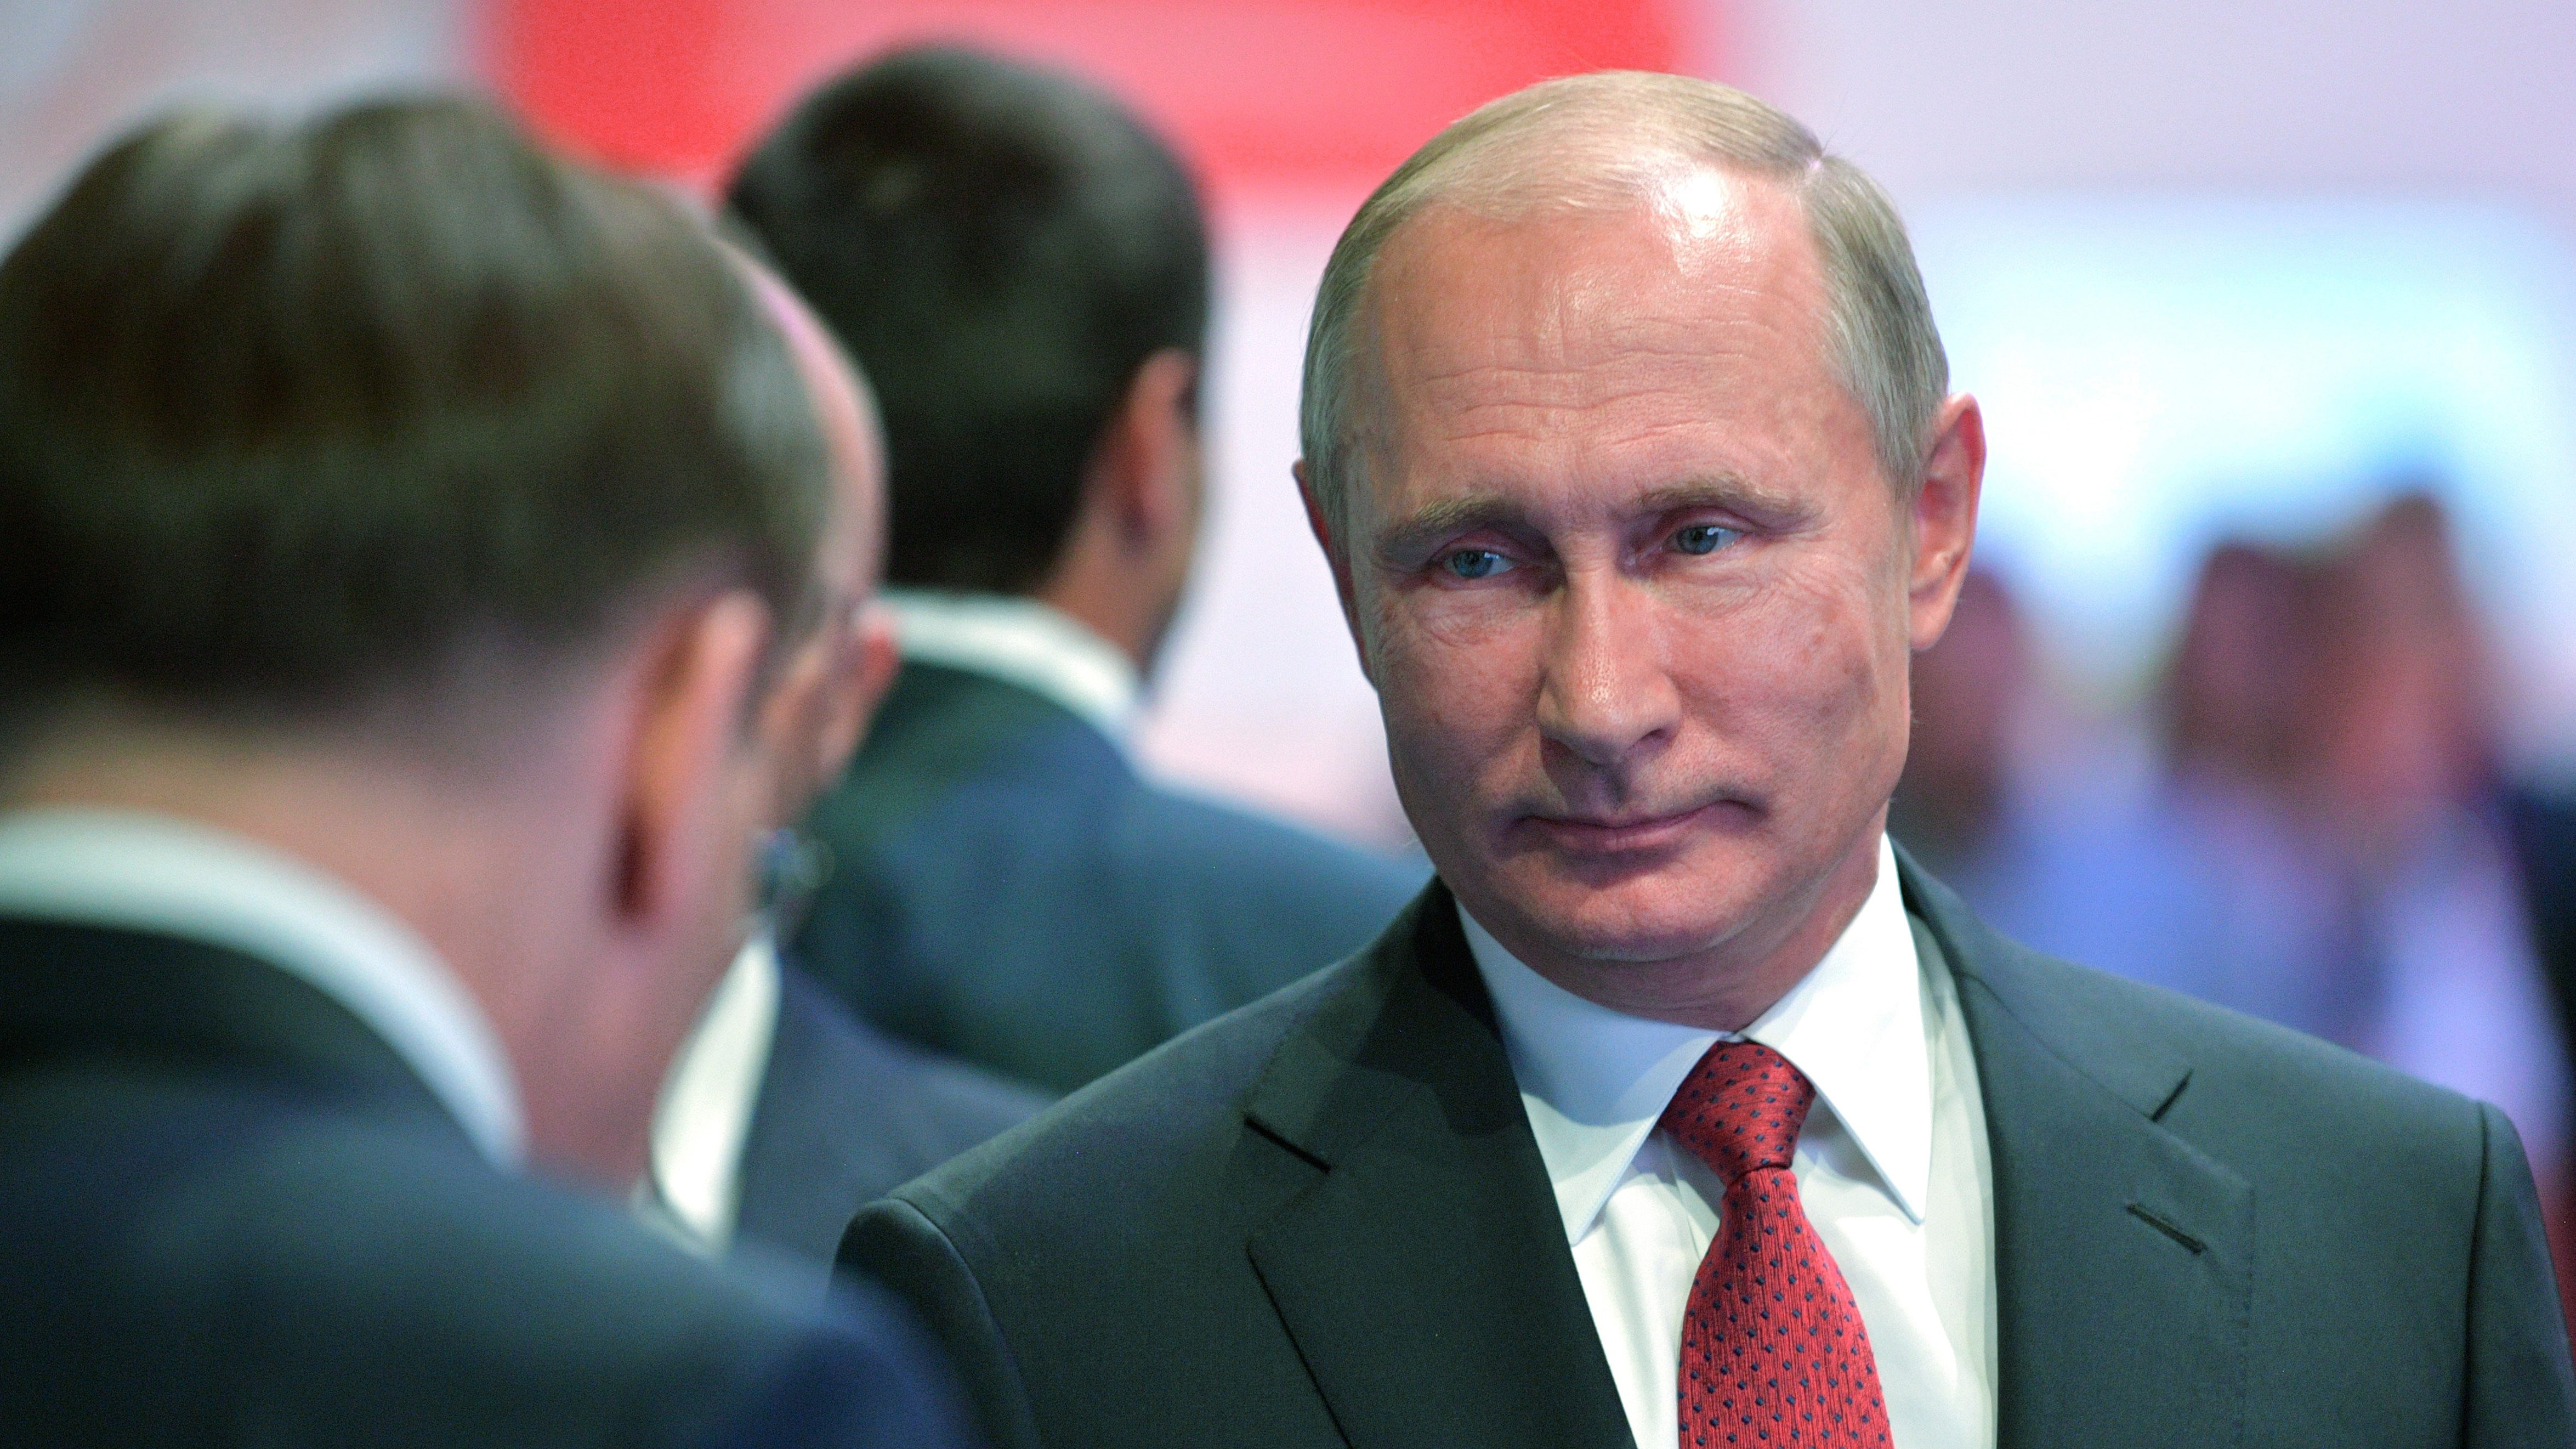 """Russian President Vladimir Putin, right, attends a meeting with students in Yaroslavl, Russia, Friday, Sept. 1, 2017. Putin said that whoever reaches a breakthrough in developing artificial intelligence will come to dominate the world. Putin, speaking Friday at a meeting with students, said the development of AI raises """"colossal opportunities and threats that are difficult to predict now.""""  (Alexei Druzhinin, Kremlin Pool Photo via AP)"""